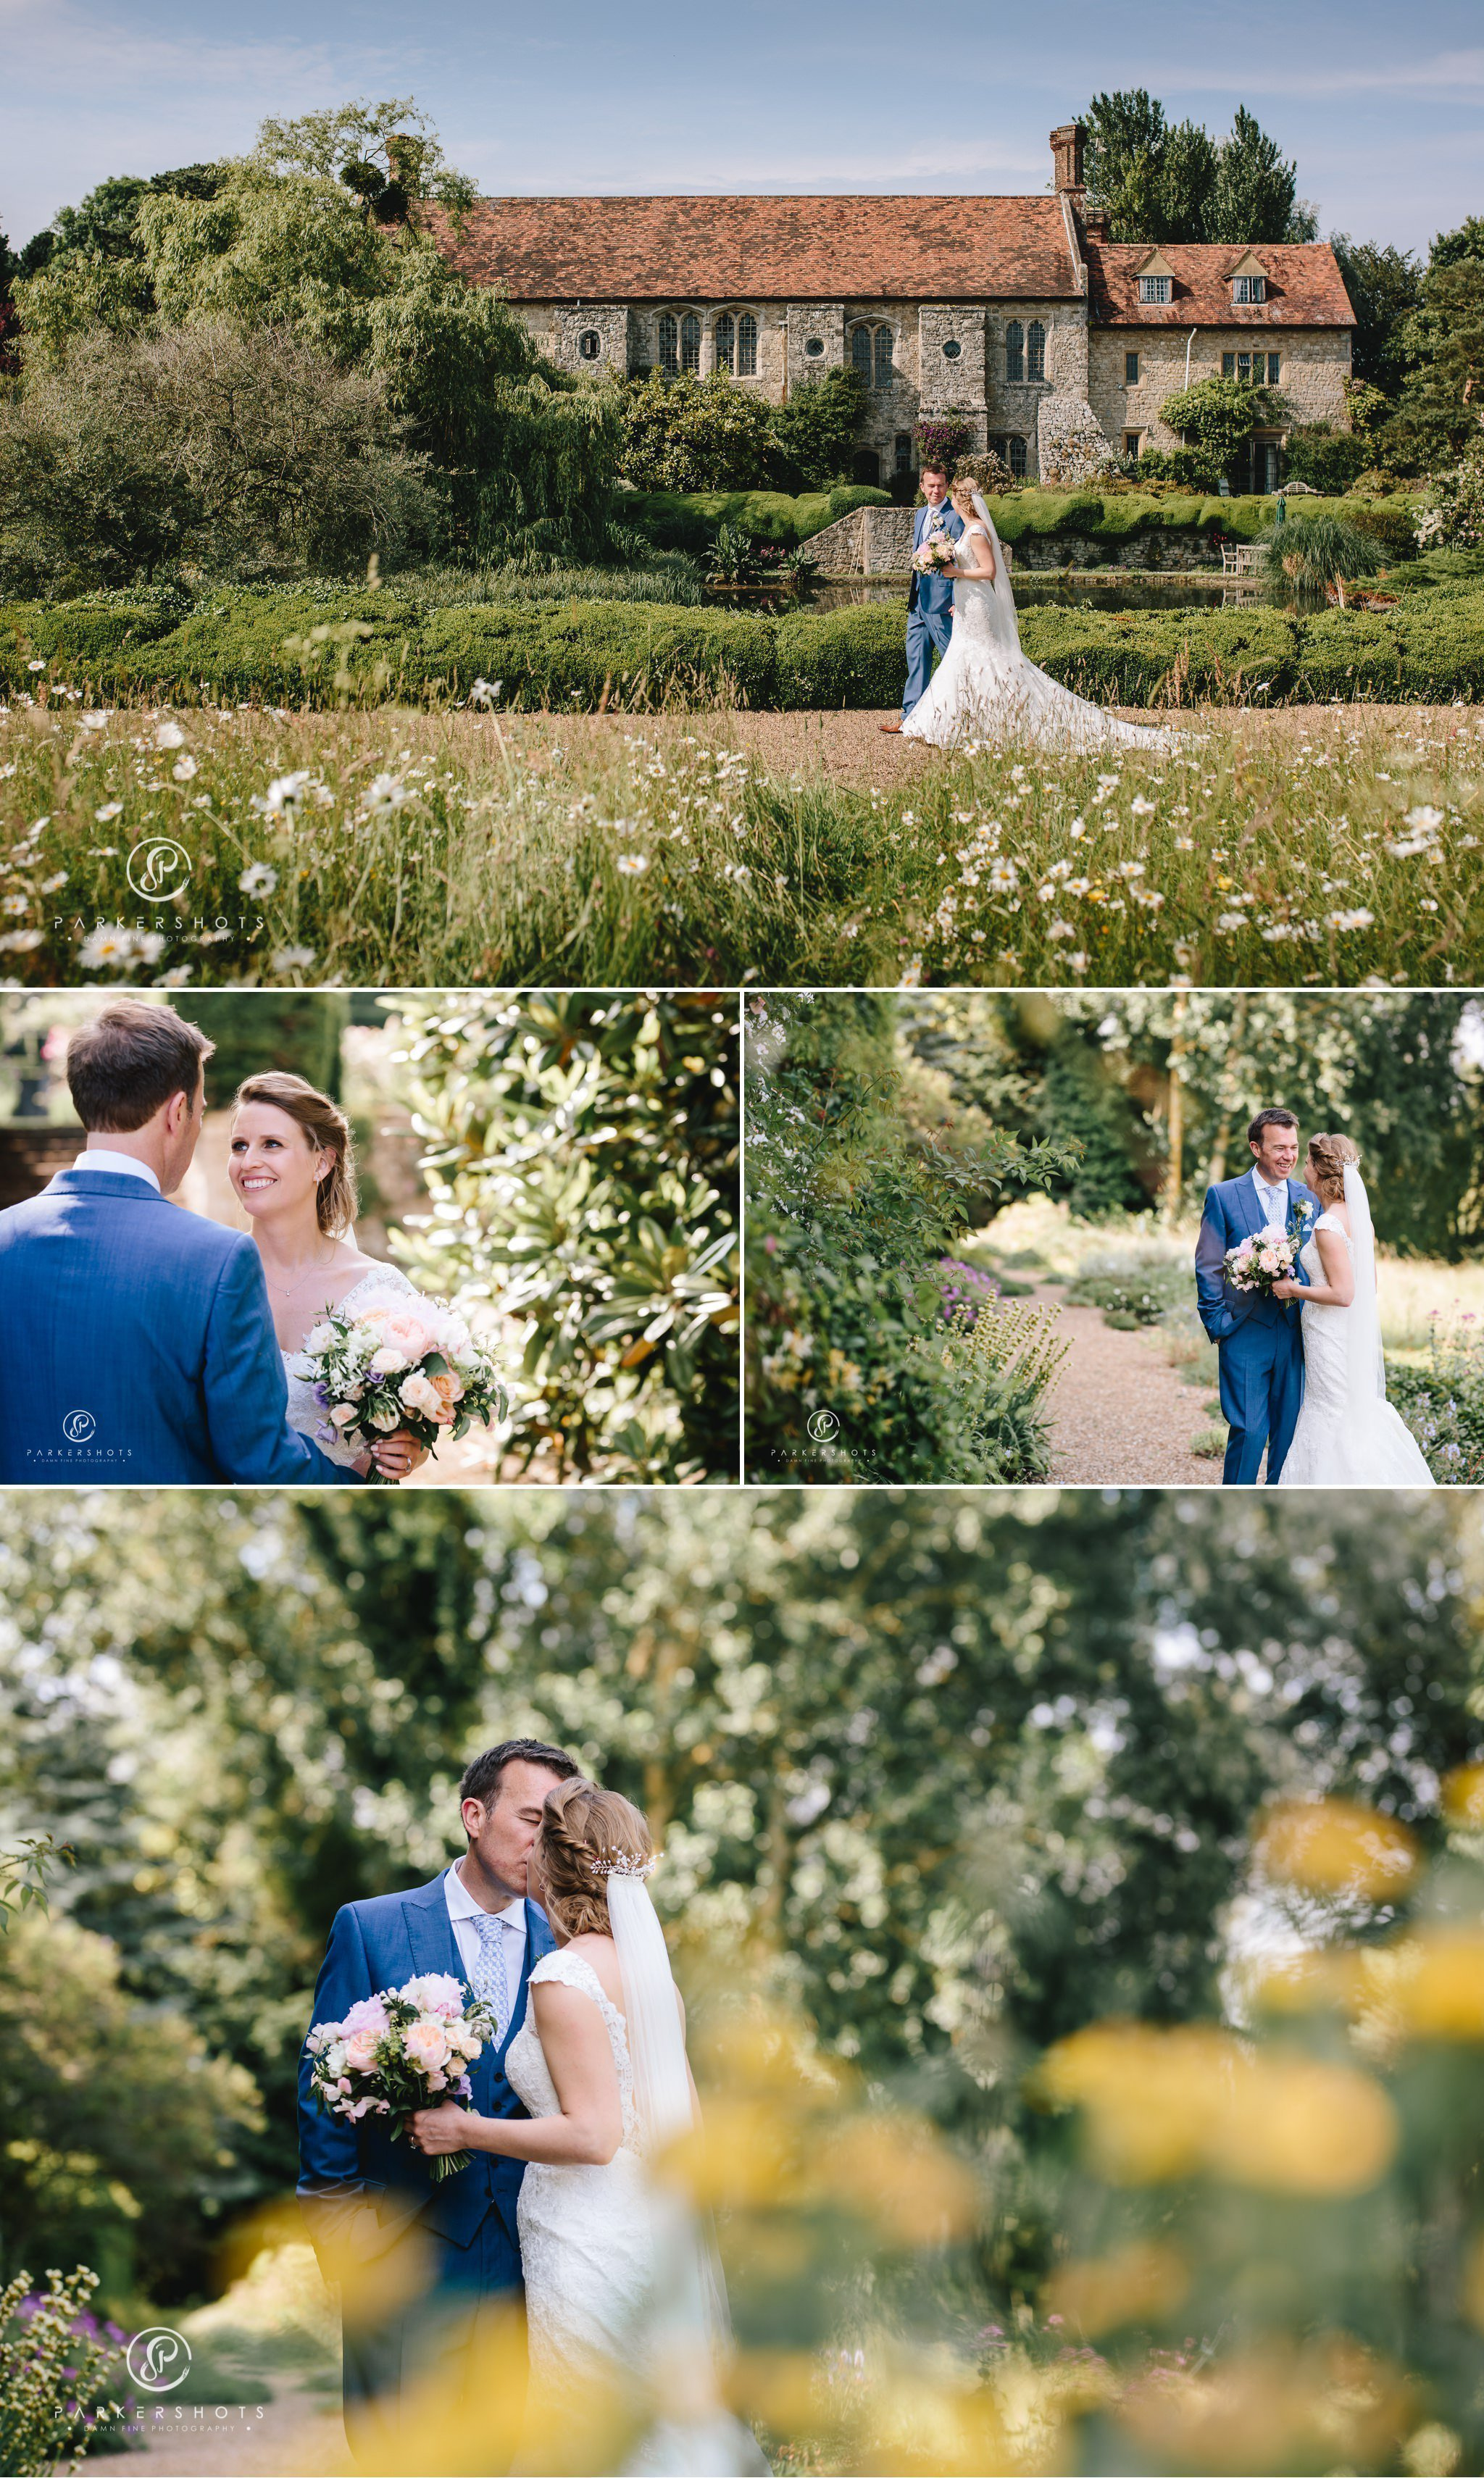 Portraits of bride and groom at Nettlestead Place by Kent Wedding Photographer Parkershots